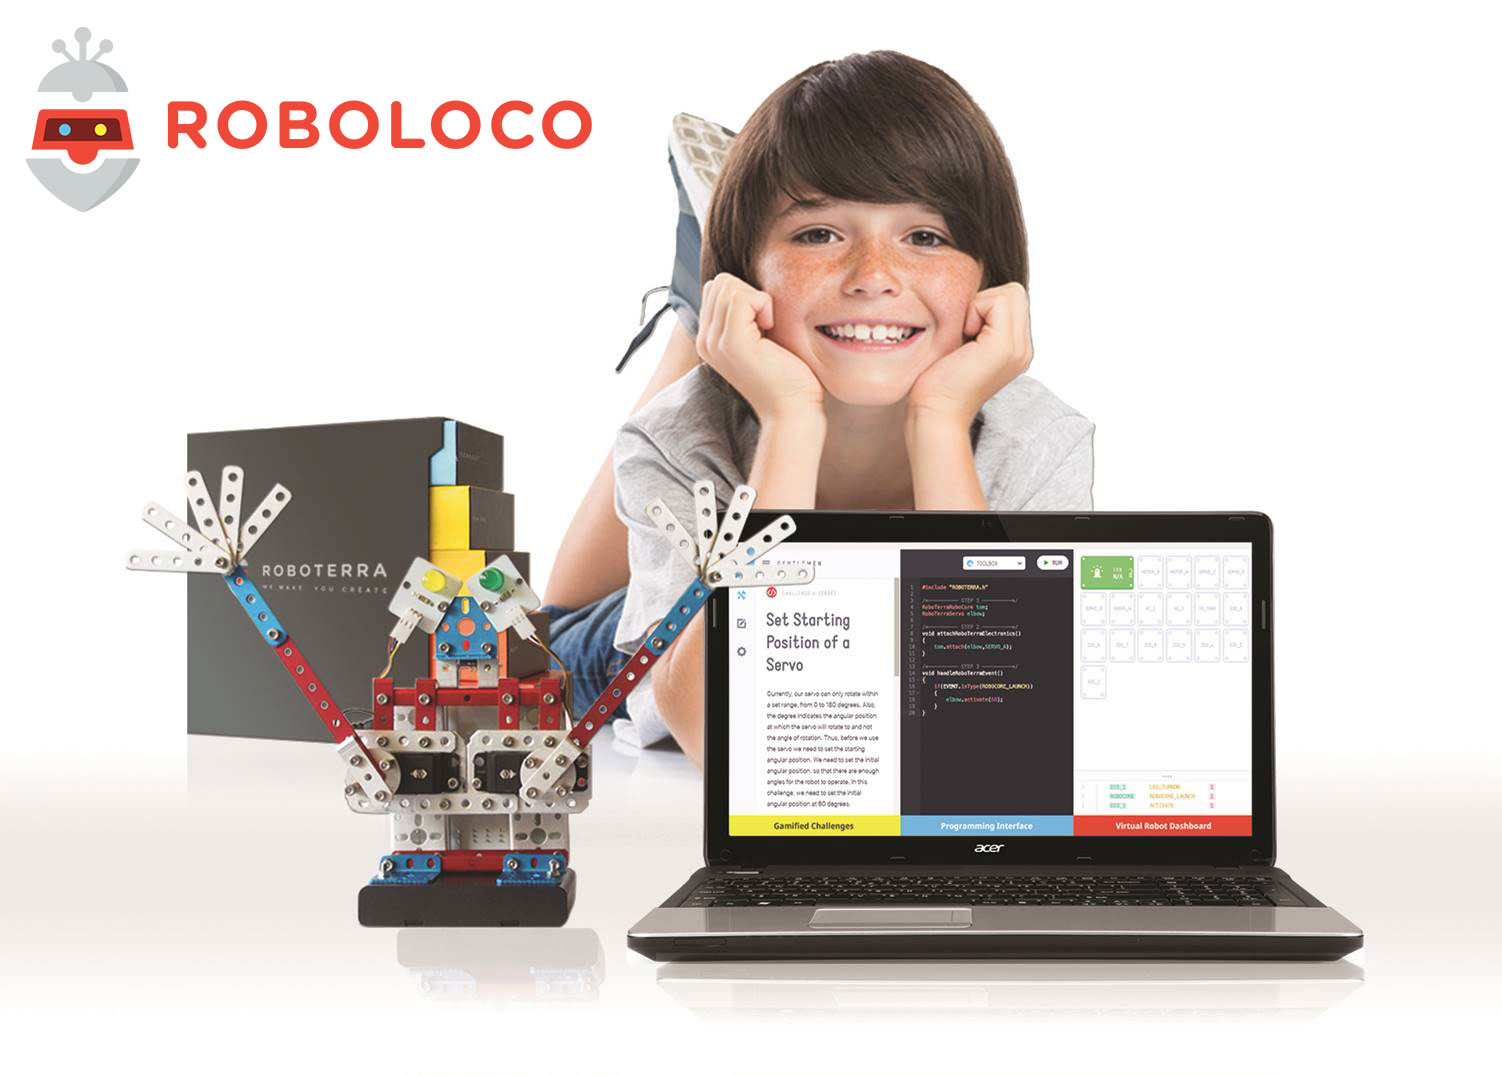 Enlightone: Robots Are Coming To A School Near You